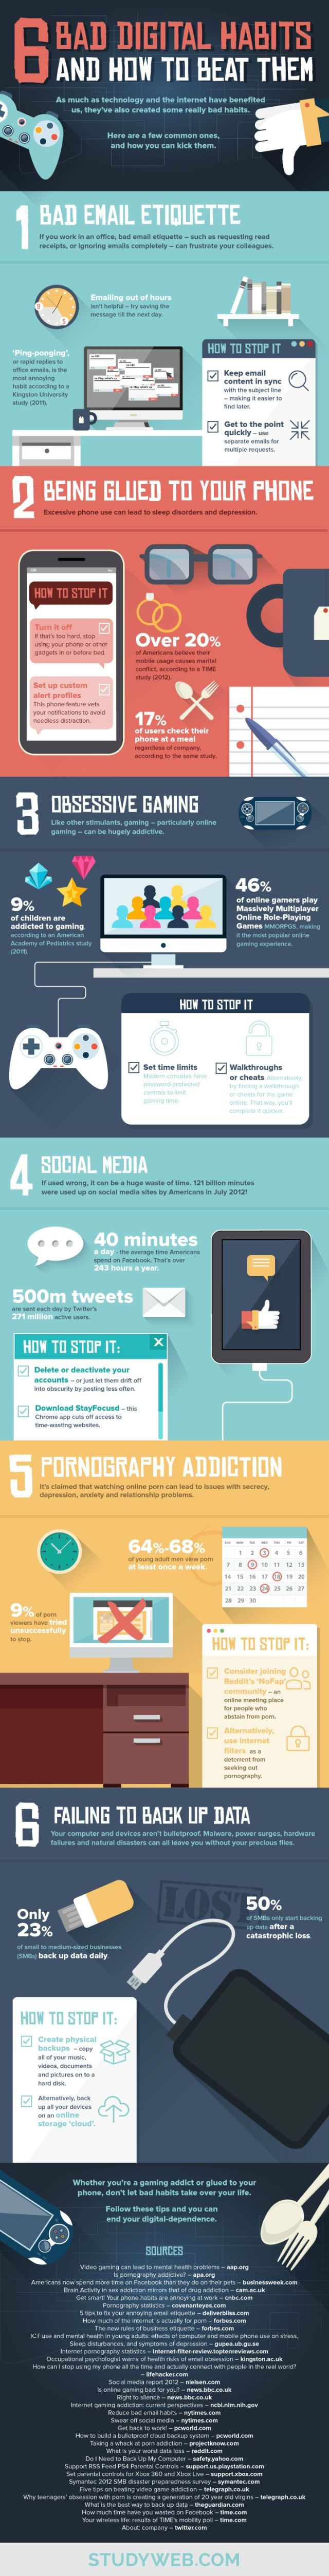 Digital_BadHabits_Infographic